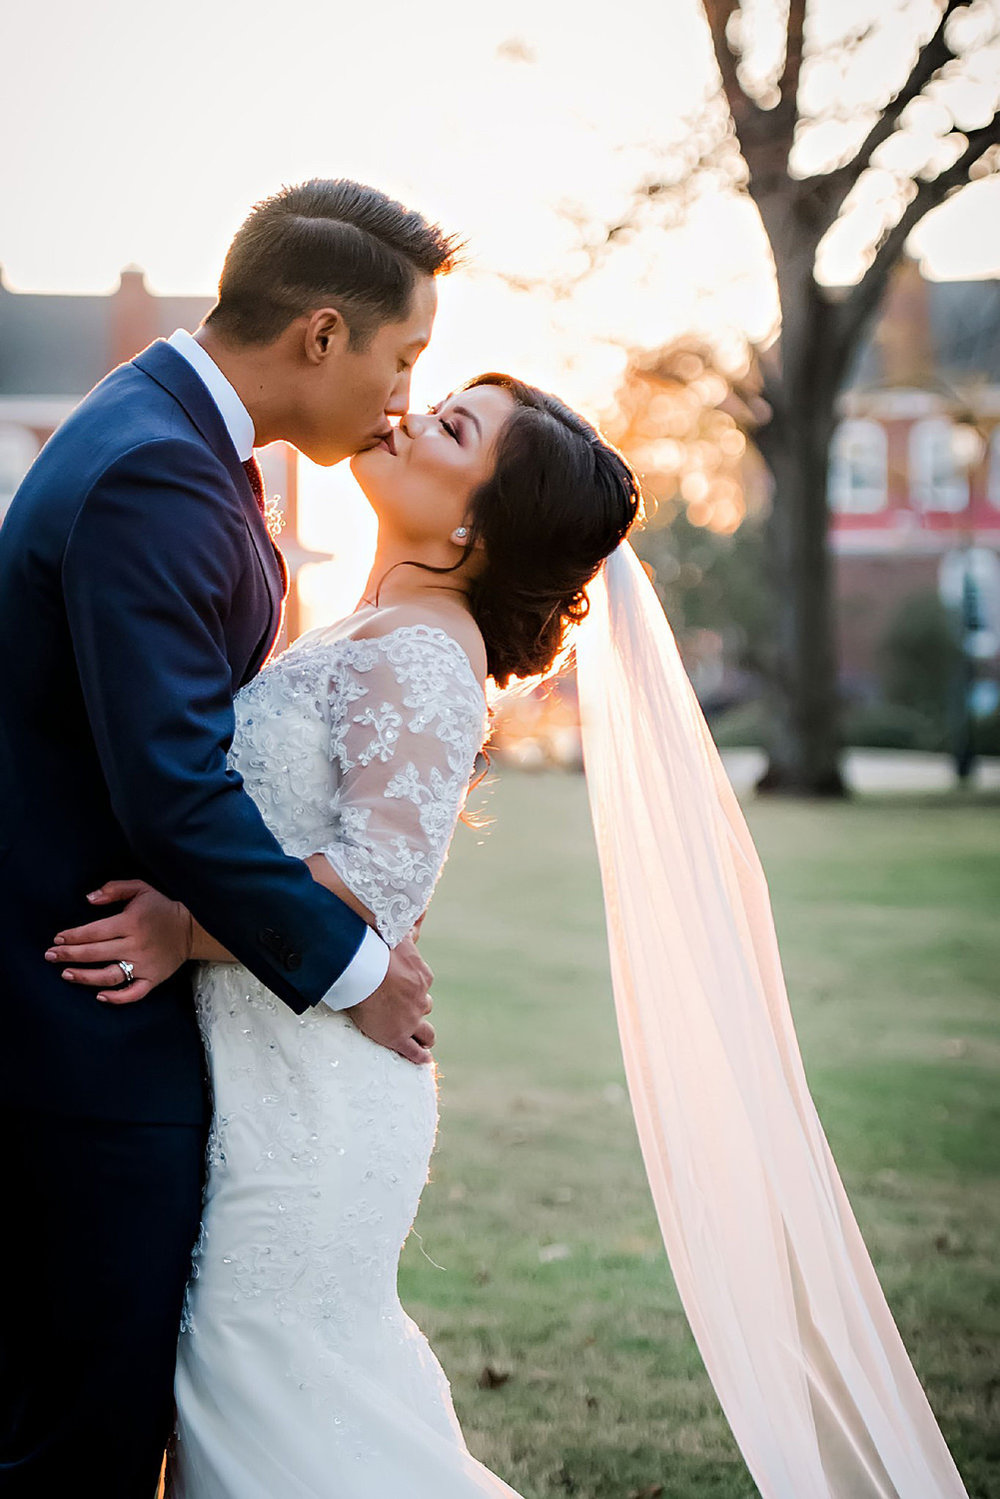 bride-and-groom-historic-post-office-wedding-melissa-bliss-photography.jpg